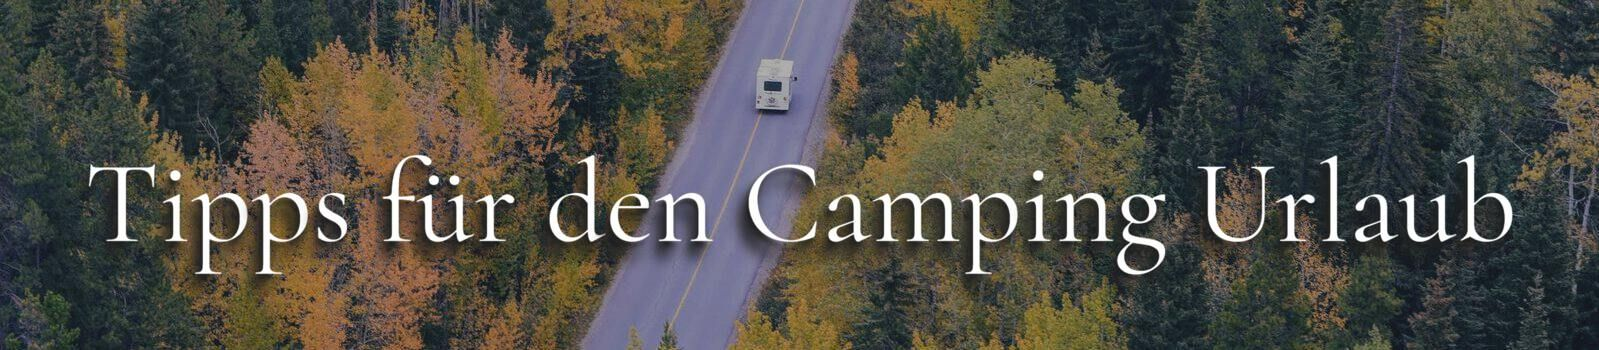 Camping Tipps Banner